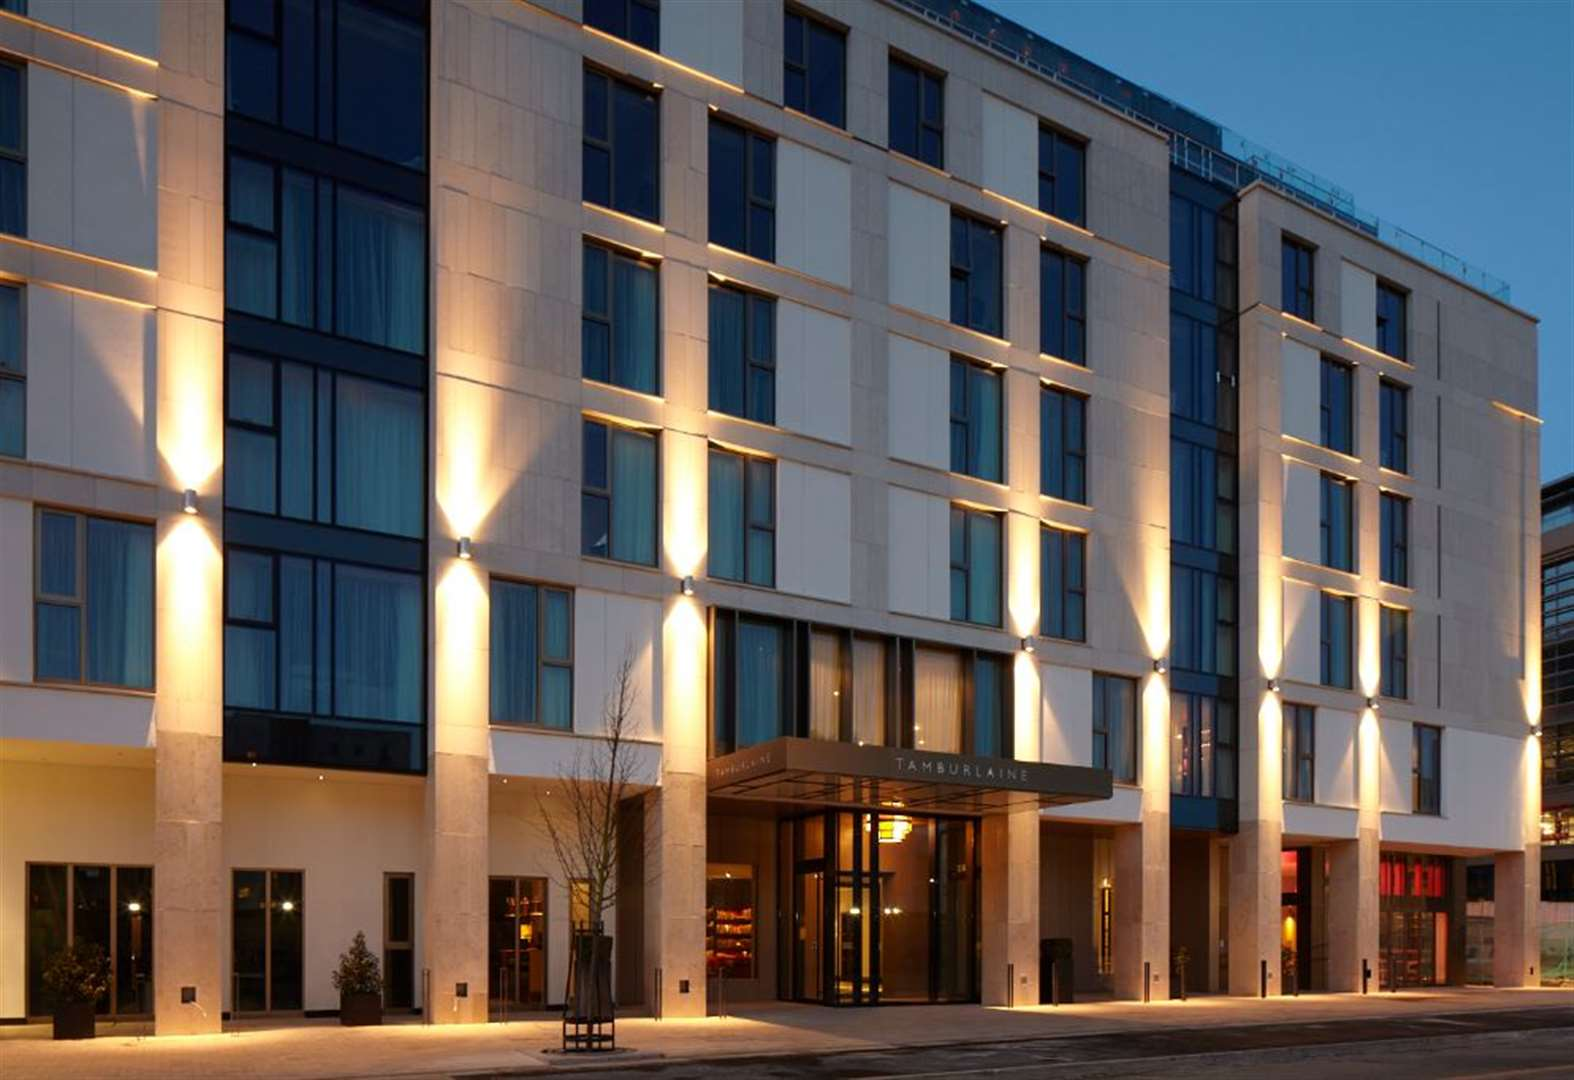 £50million Tamburlaine hotel sold to become the Clayton